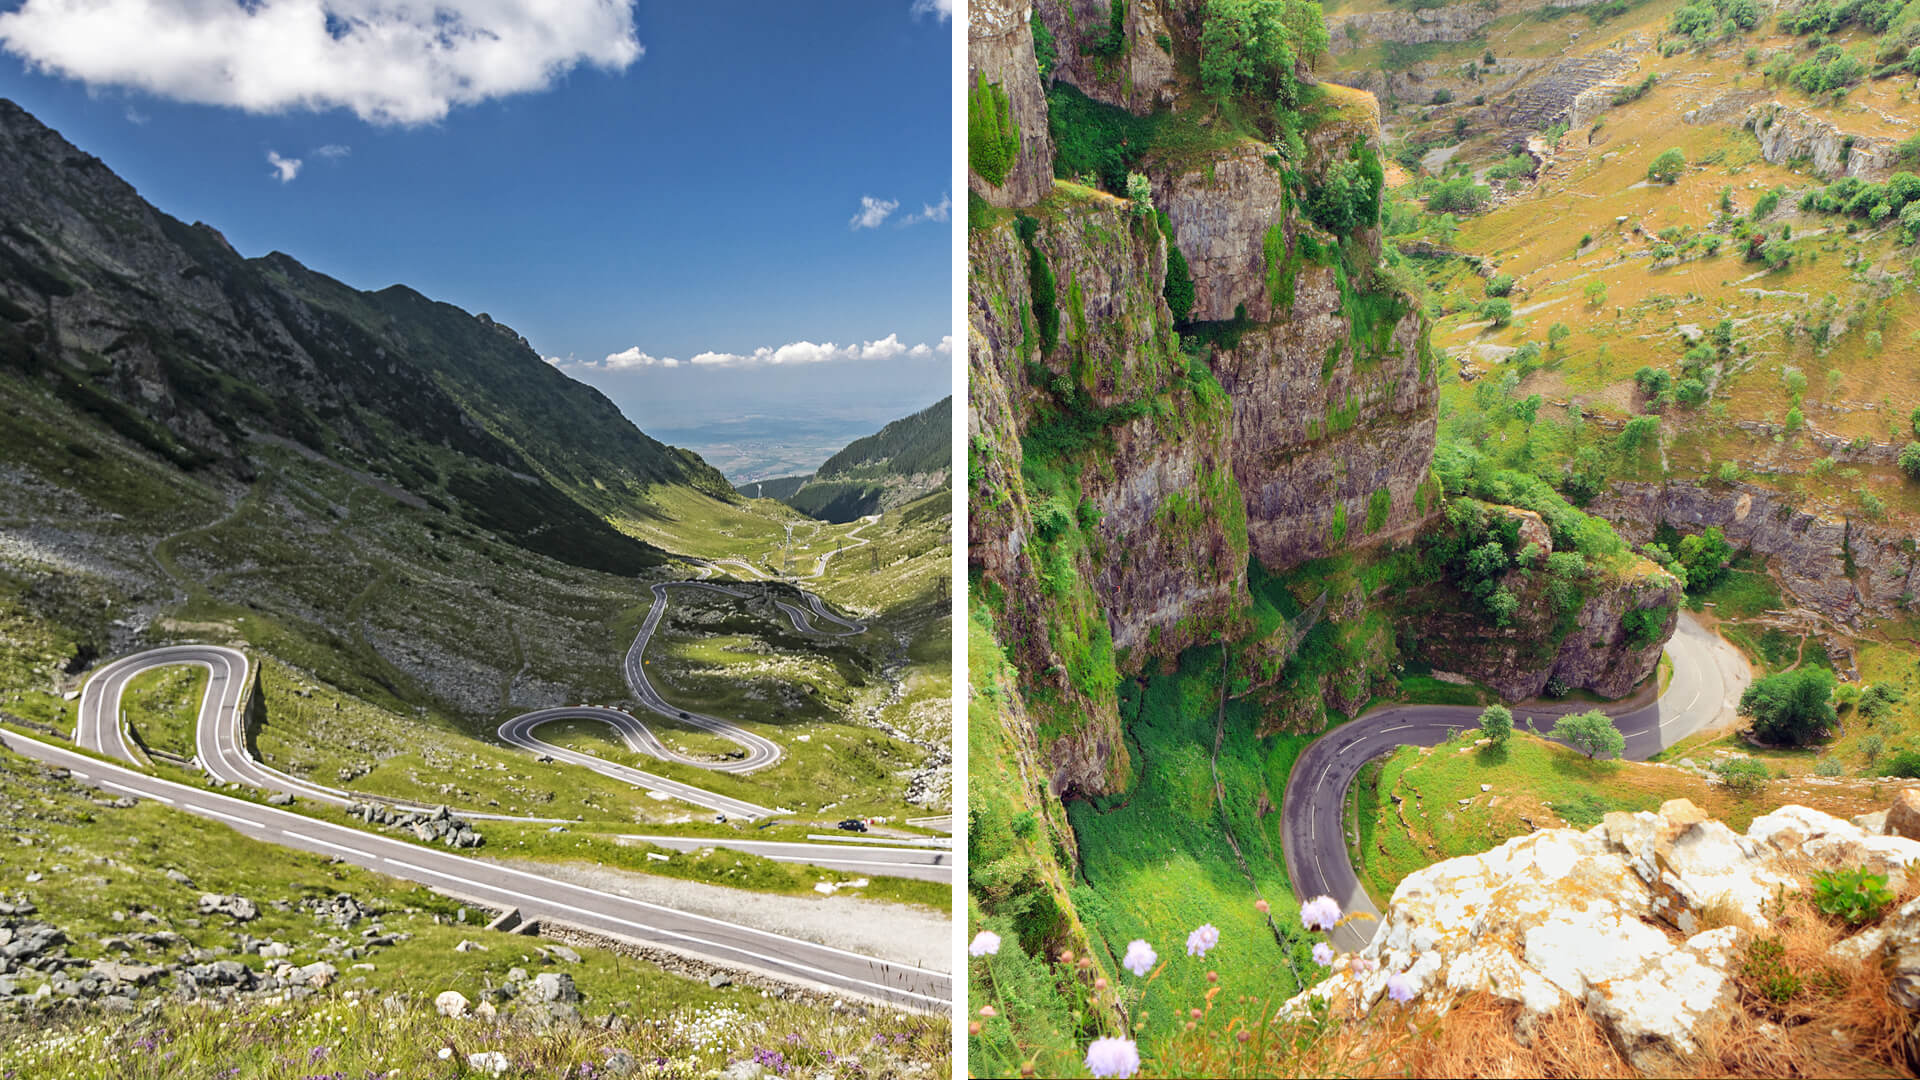 Romanian Transfagarasan Highway vs. Winding Hills in the South West of England